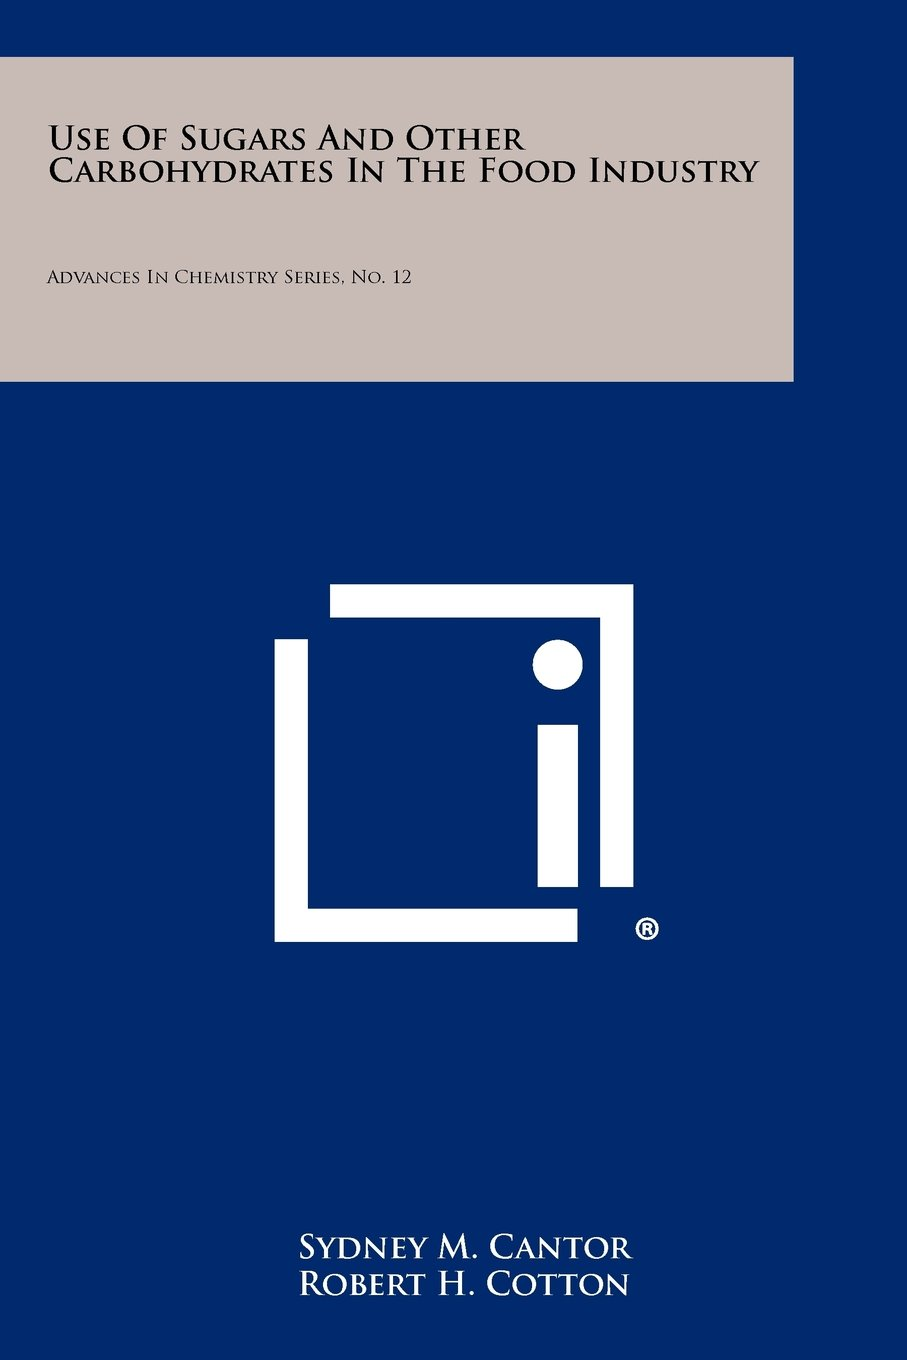 Read Online Use of Sugars and Other Carbohydrates in the Food Industry: Advances in Chemistry Series, No. 12 pdf